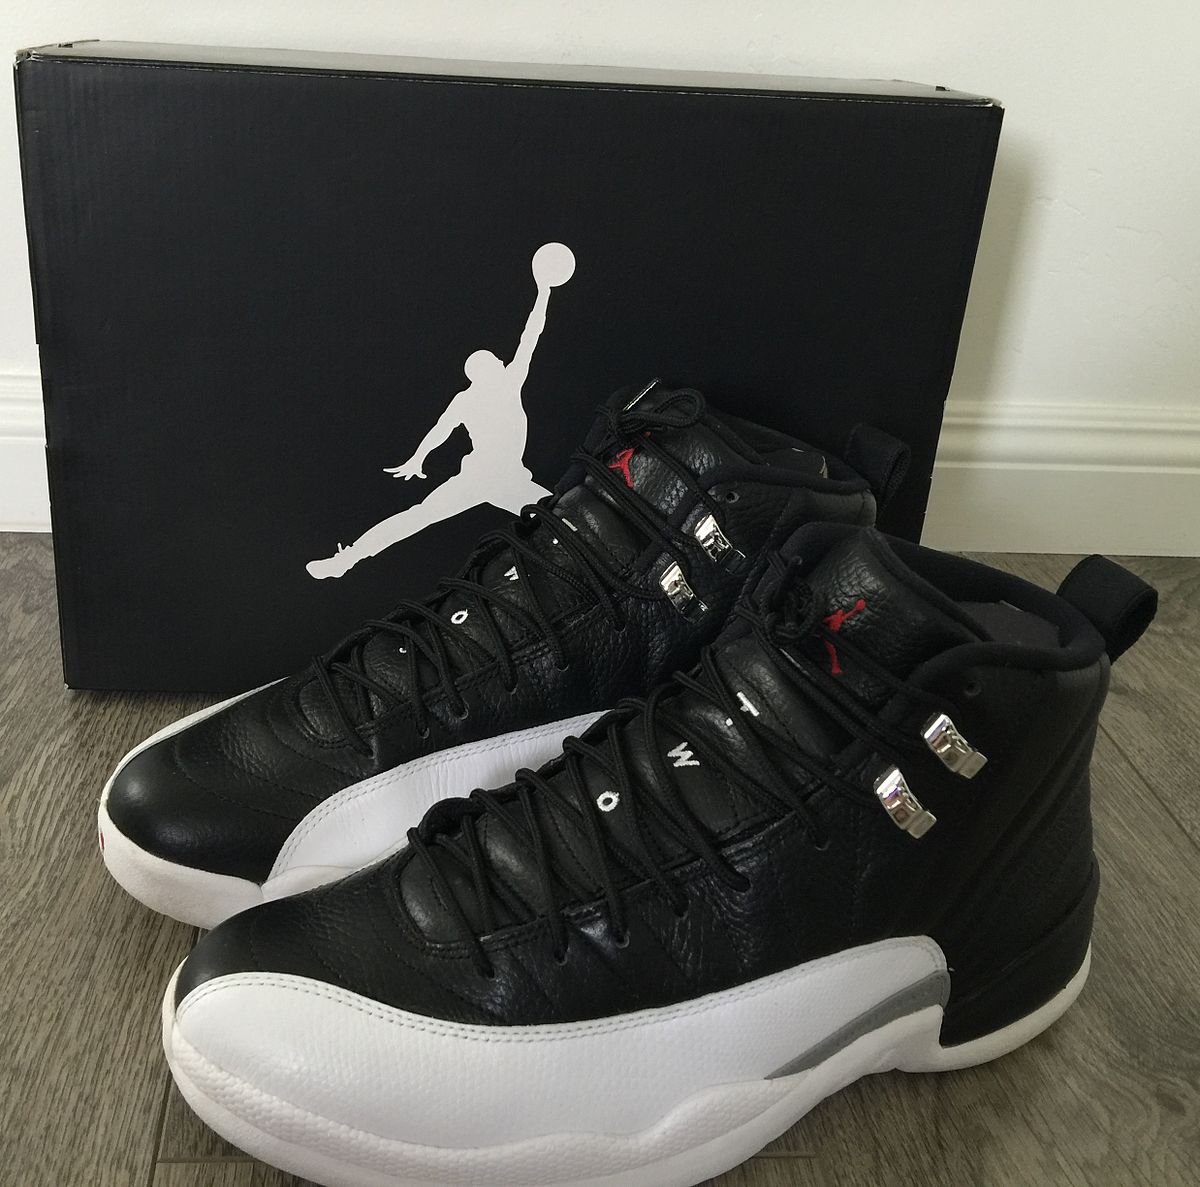 cheaper ab297 714cd Air Jordan Retro XII